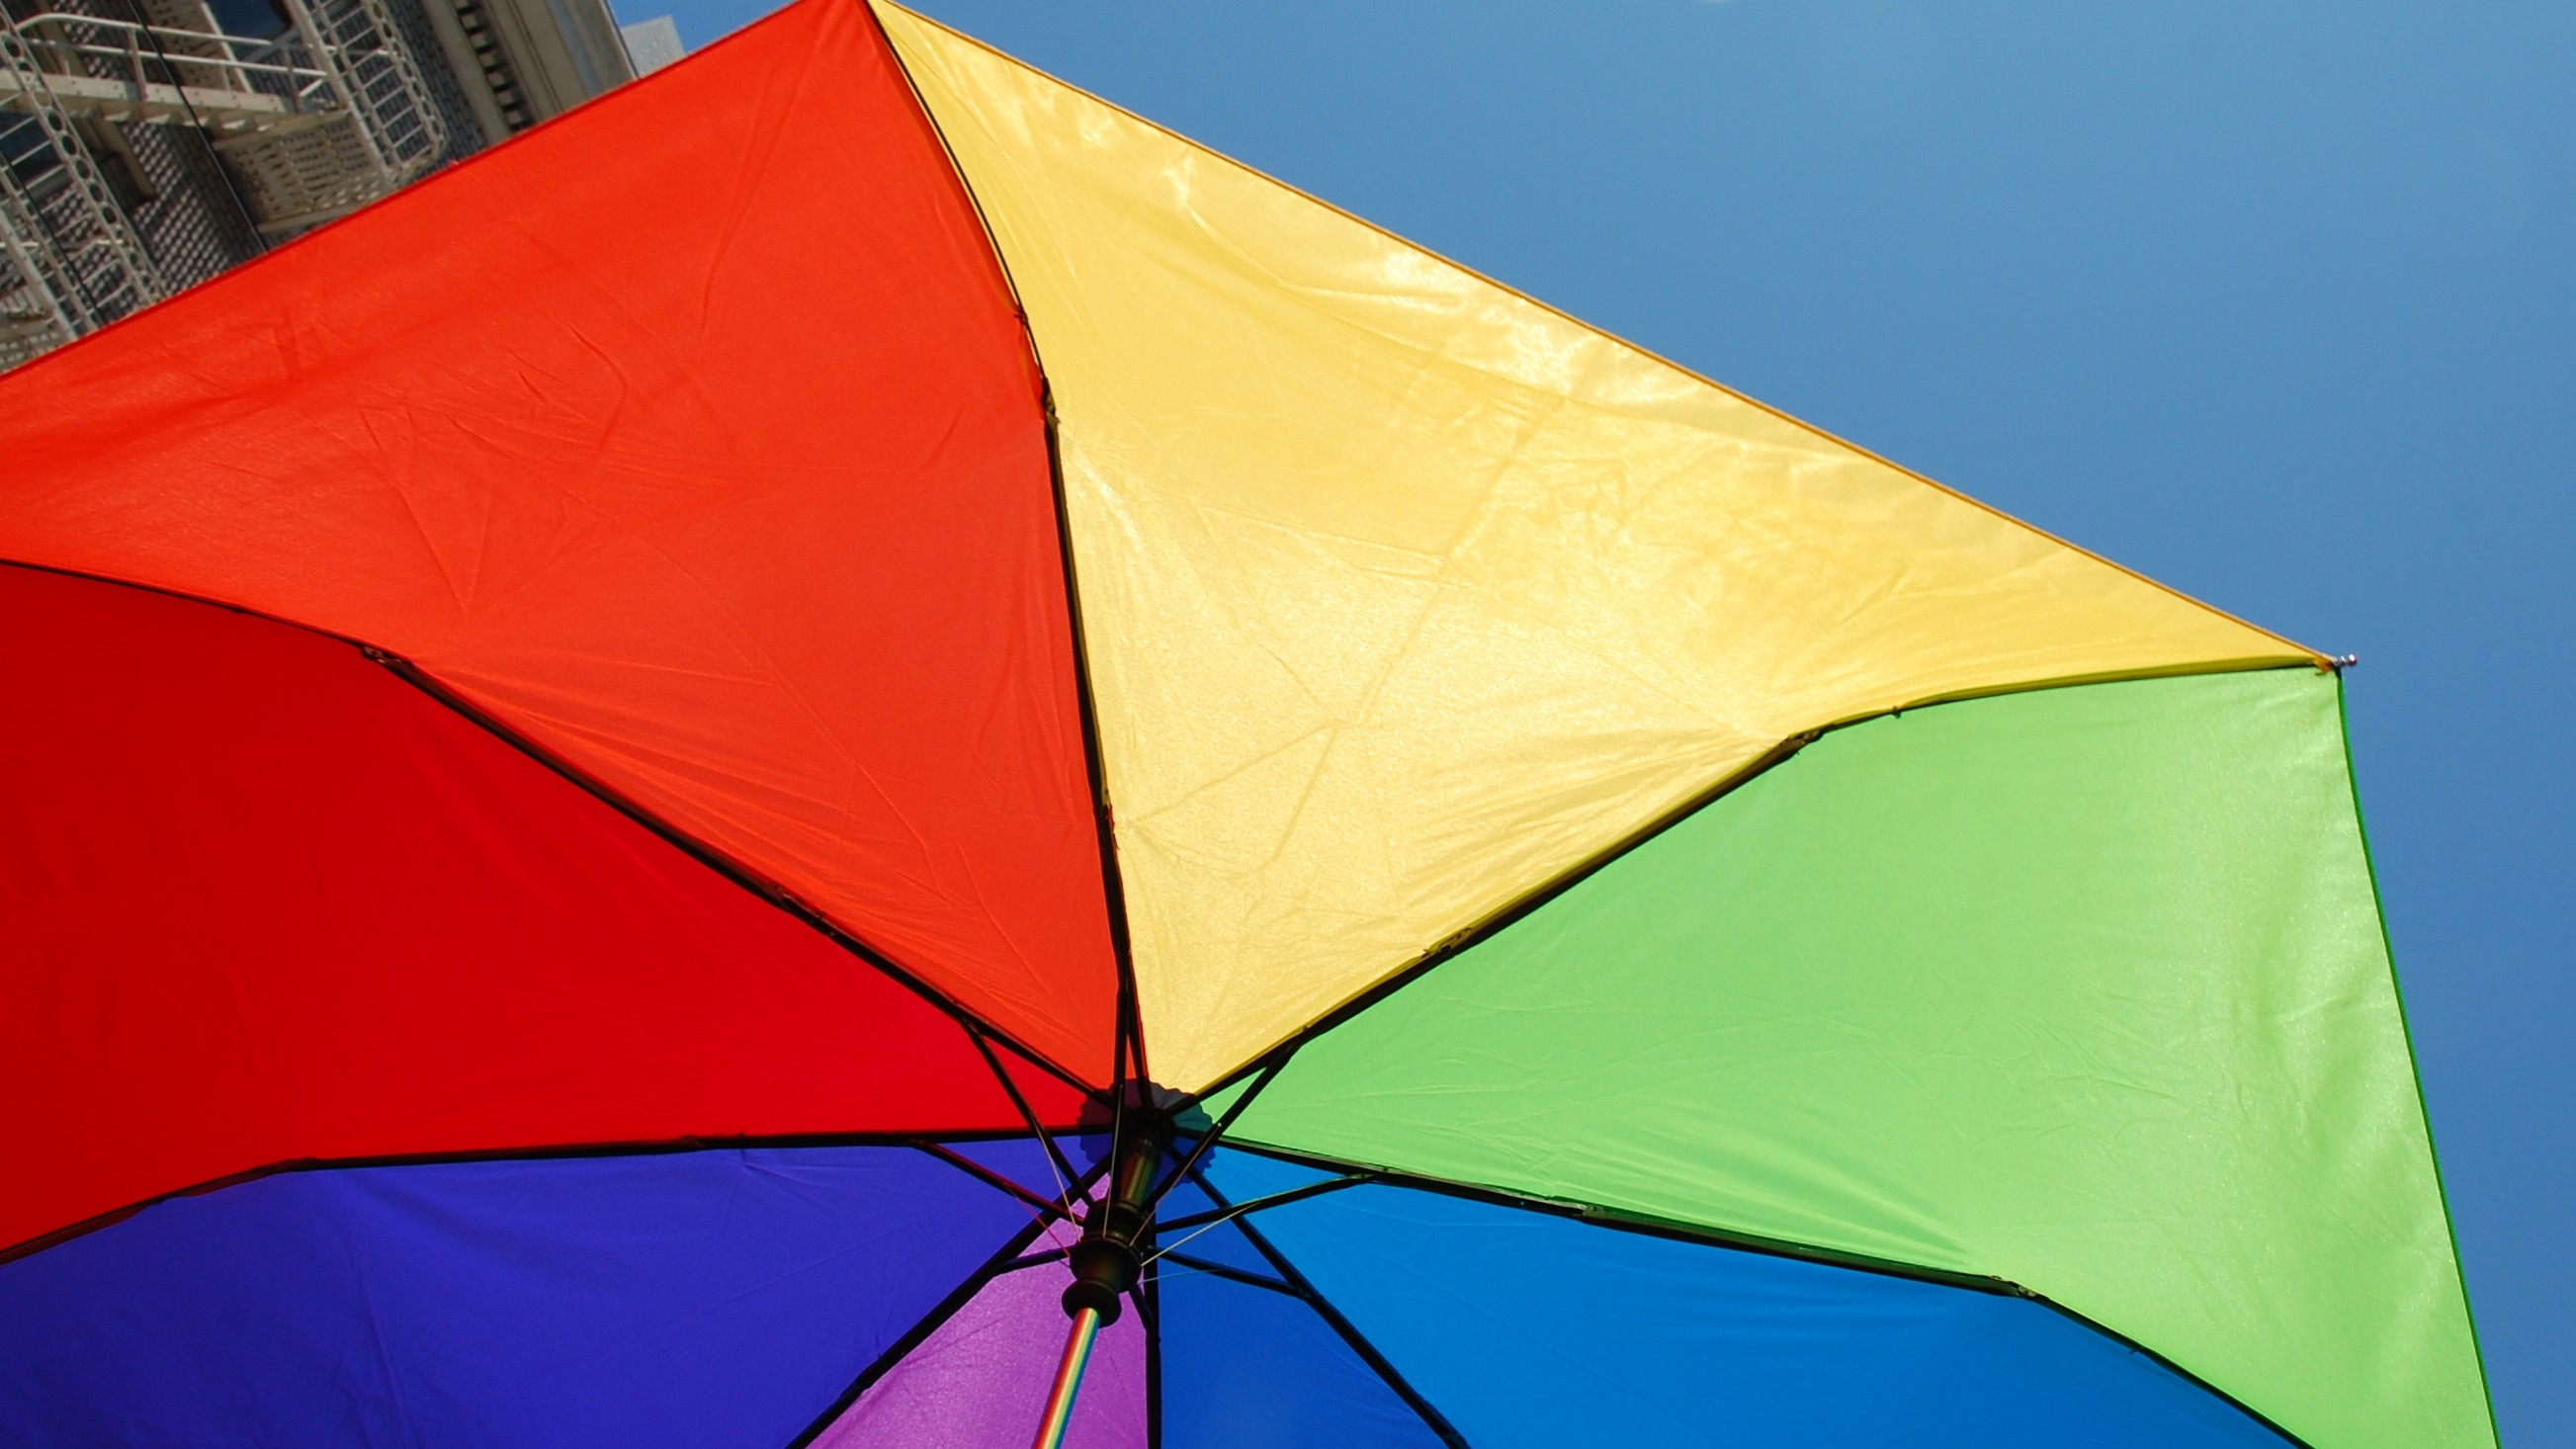 General 2606x1466 umbrella colorful outdoors